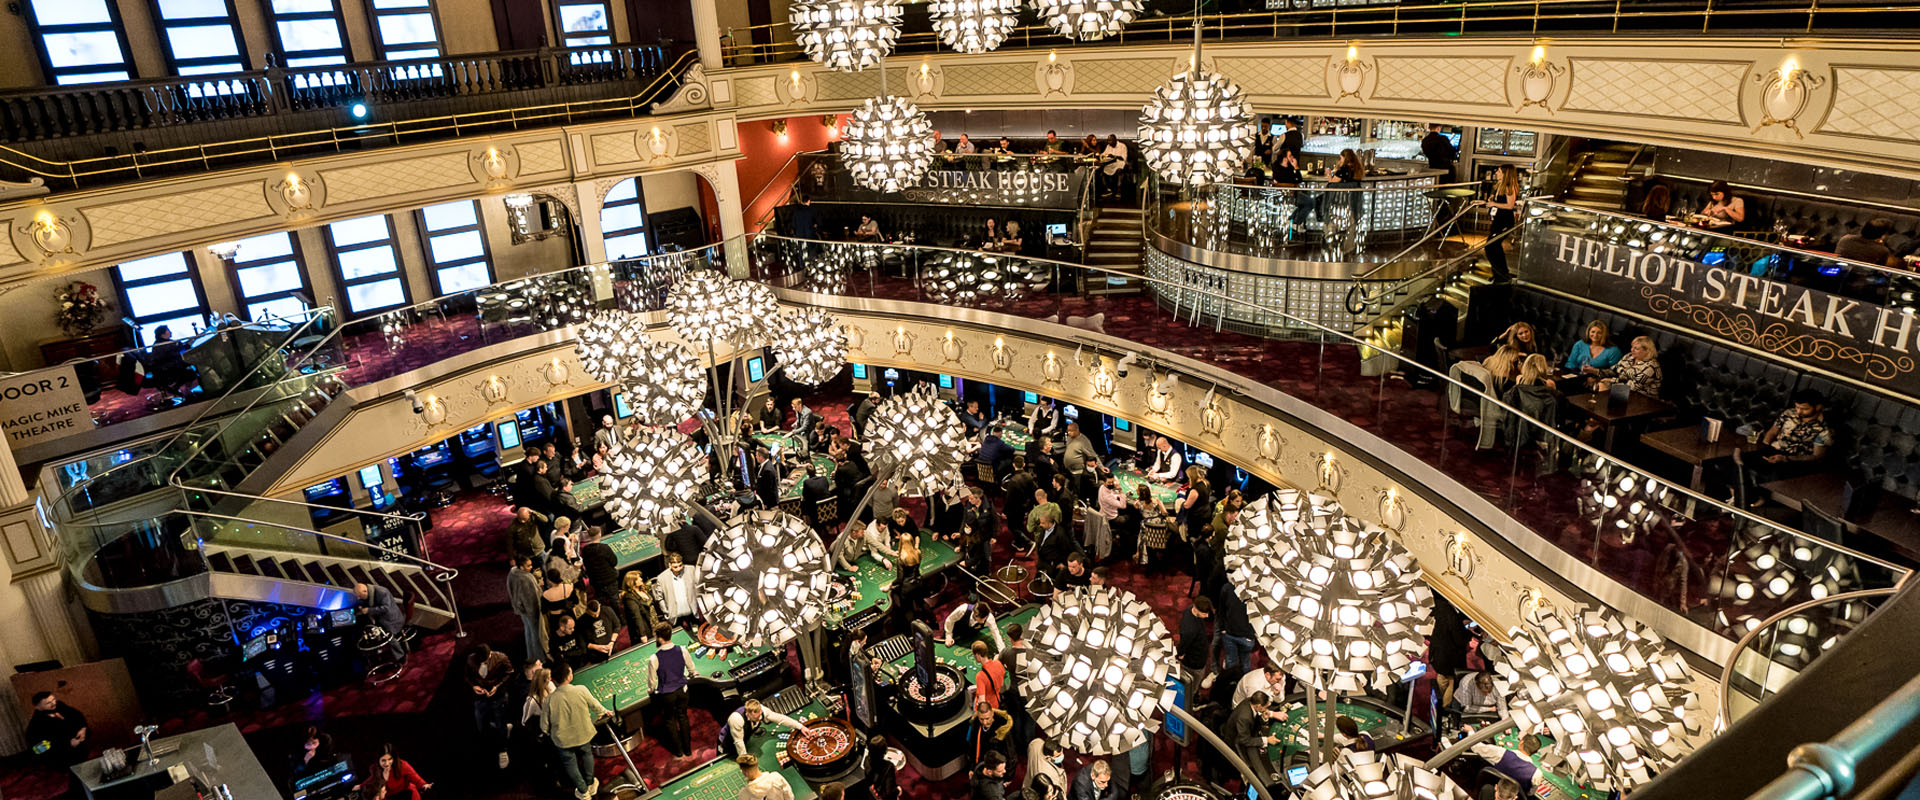 About The Hippodrome Casino